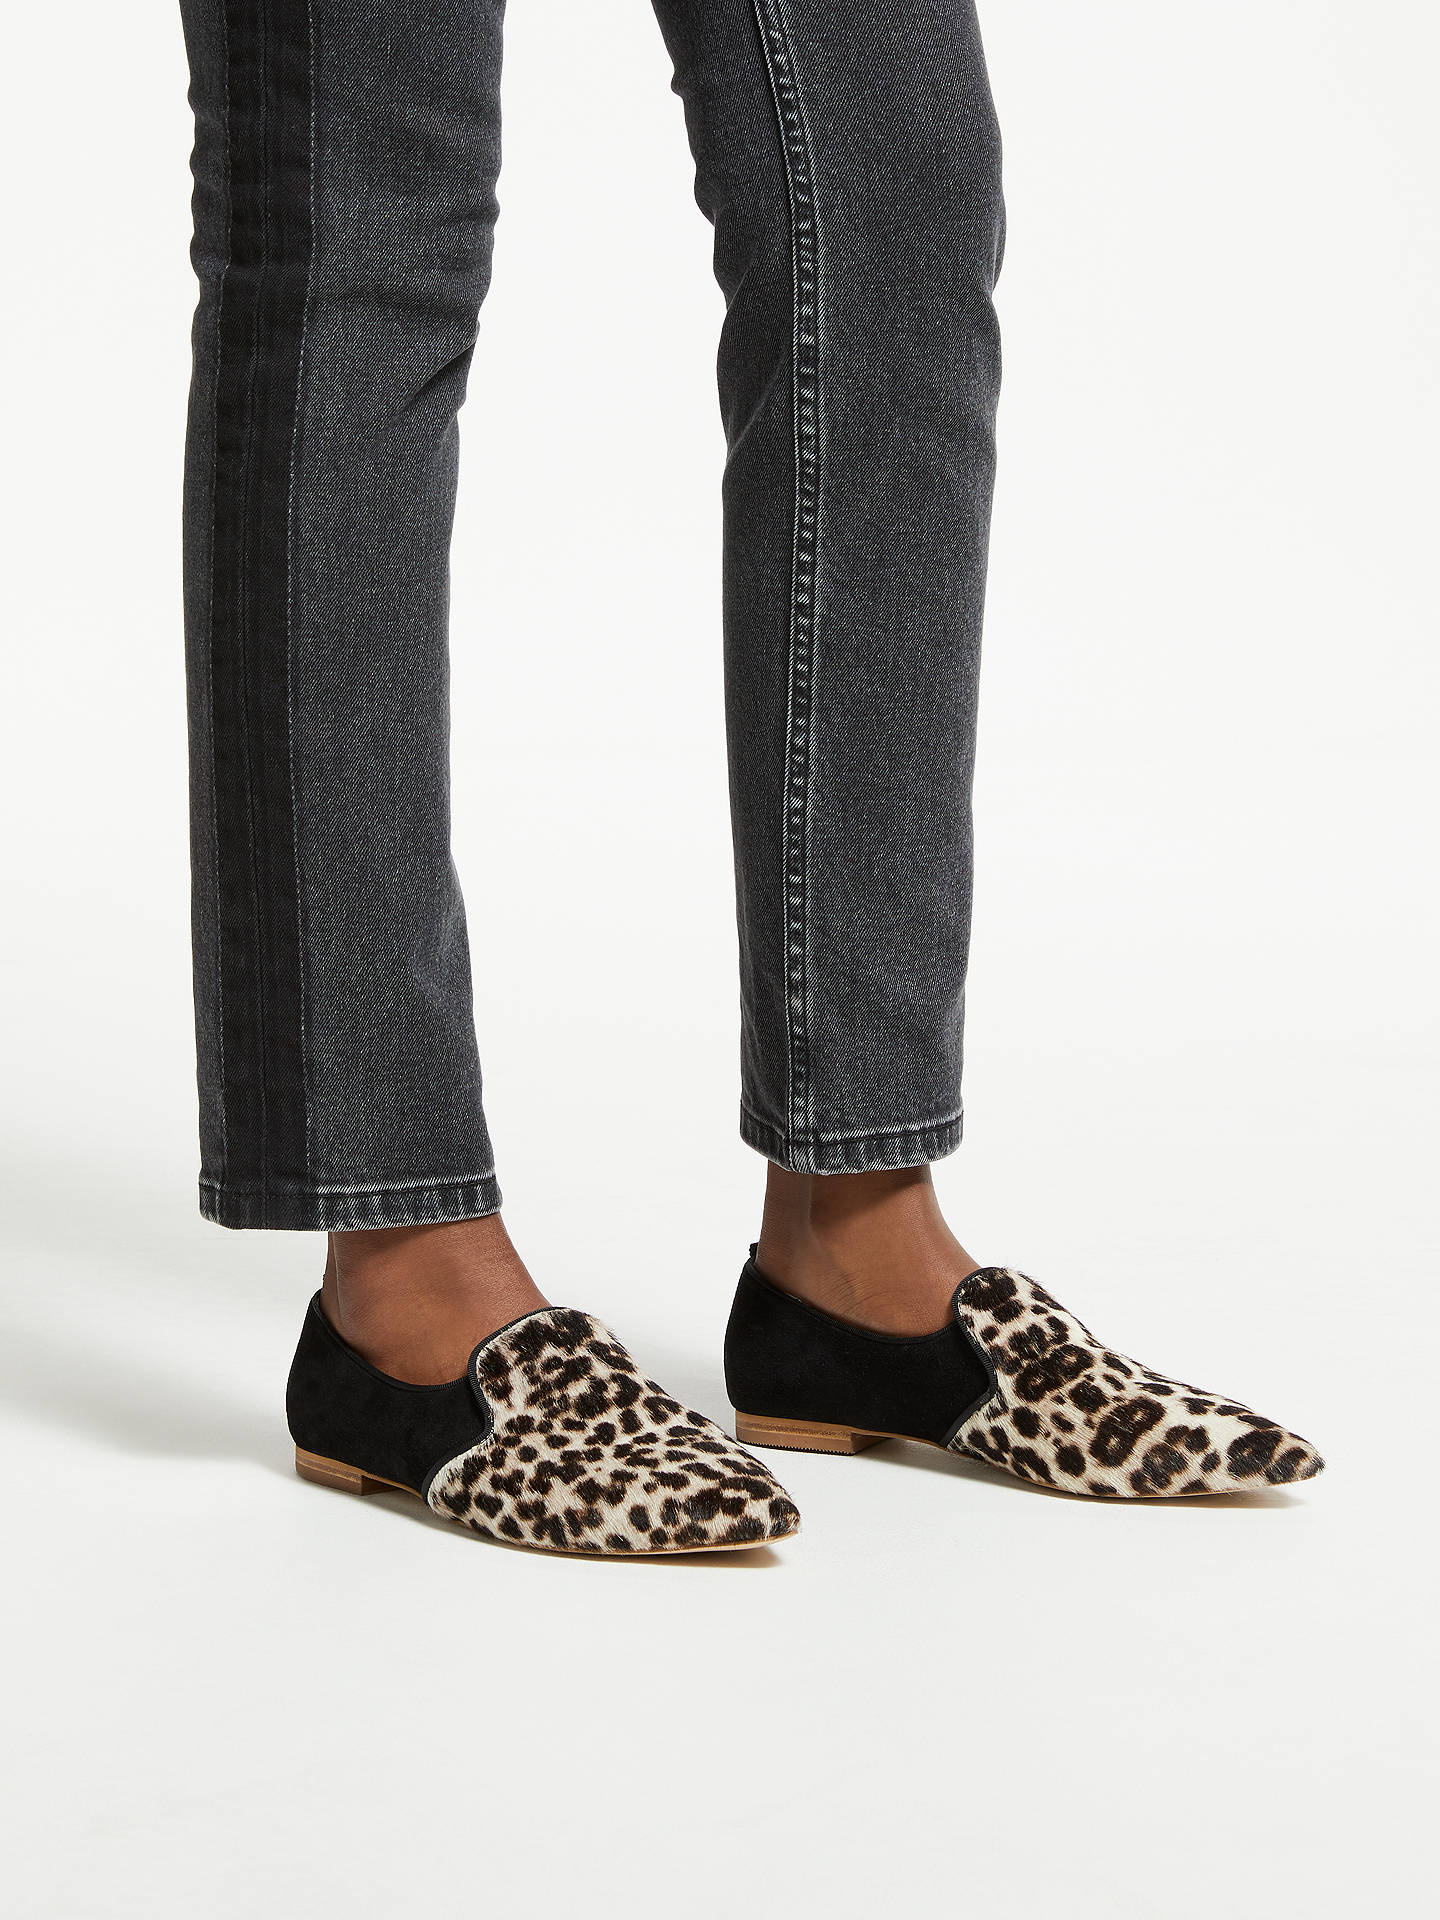 Buy Boden Rosie Hair-On-Hide Loafers, Black/Multi, 4 Online at johnlewis.com